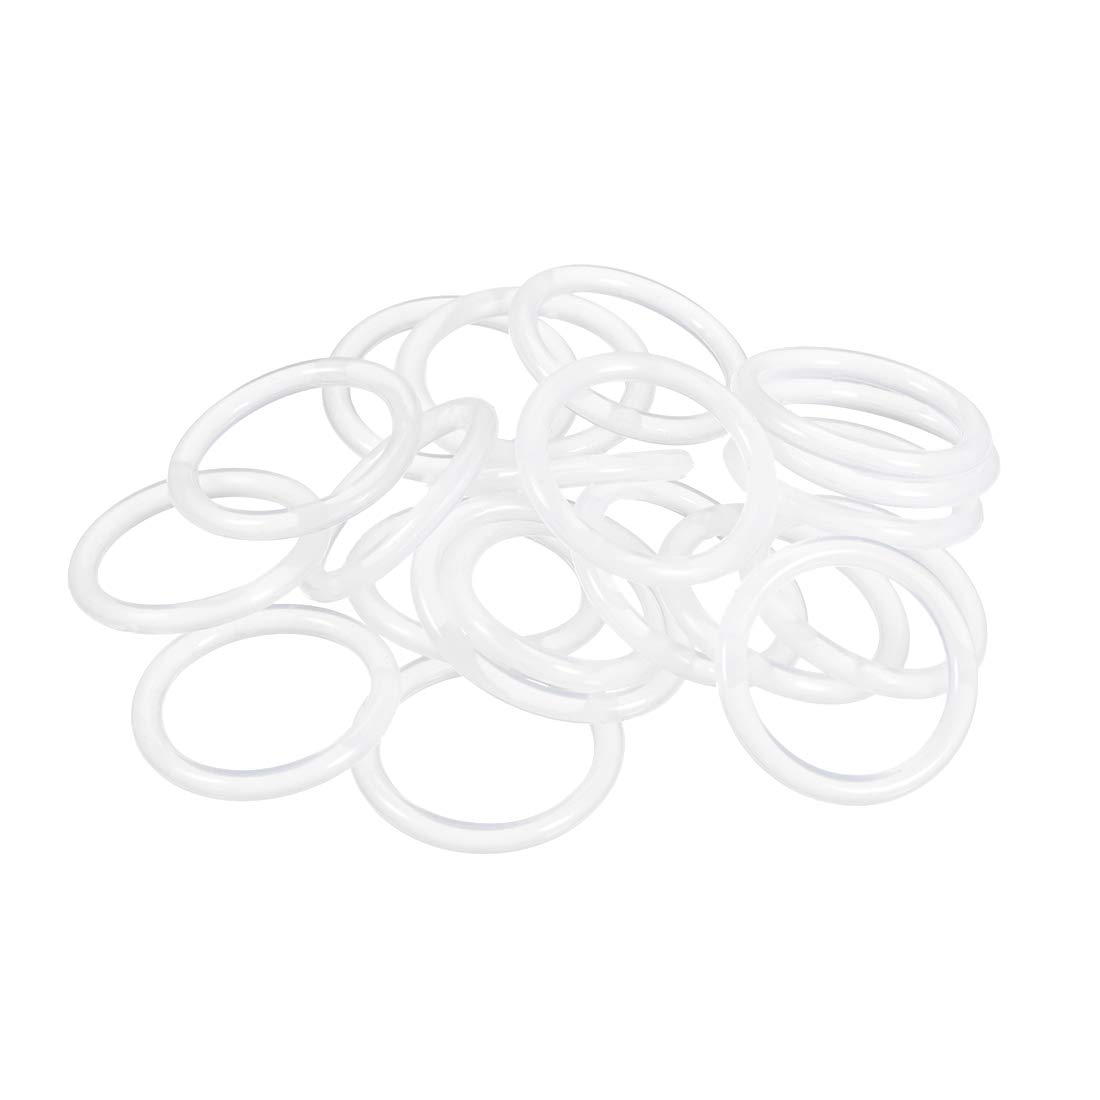 uxcell Silicone O-Ring, 25mm OD, 19mm ID, 3mm Width, VMQ Seal Rings Gasket, White, Pack of 20